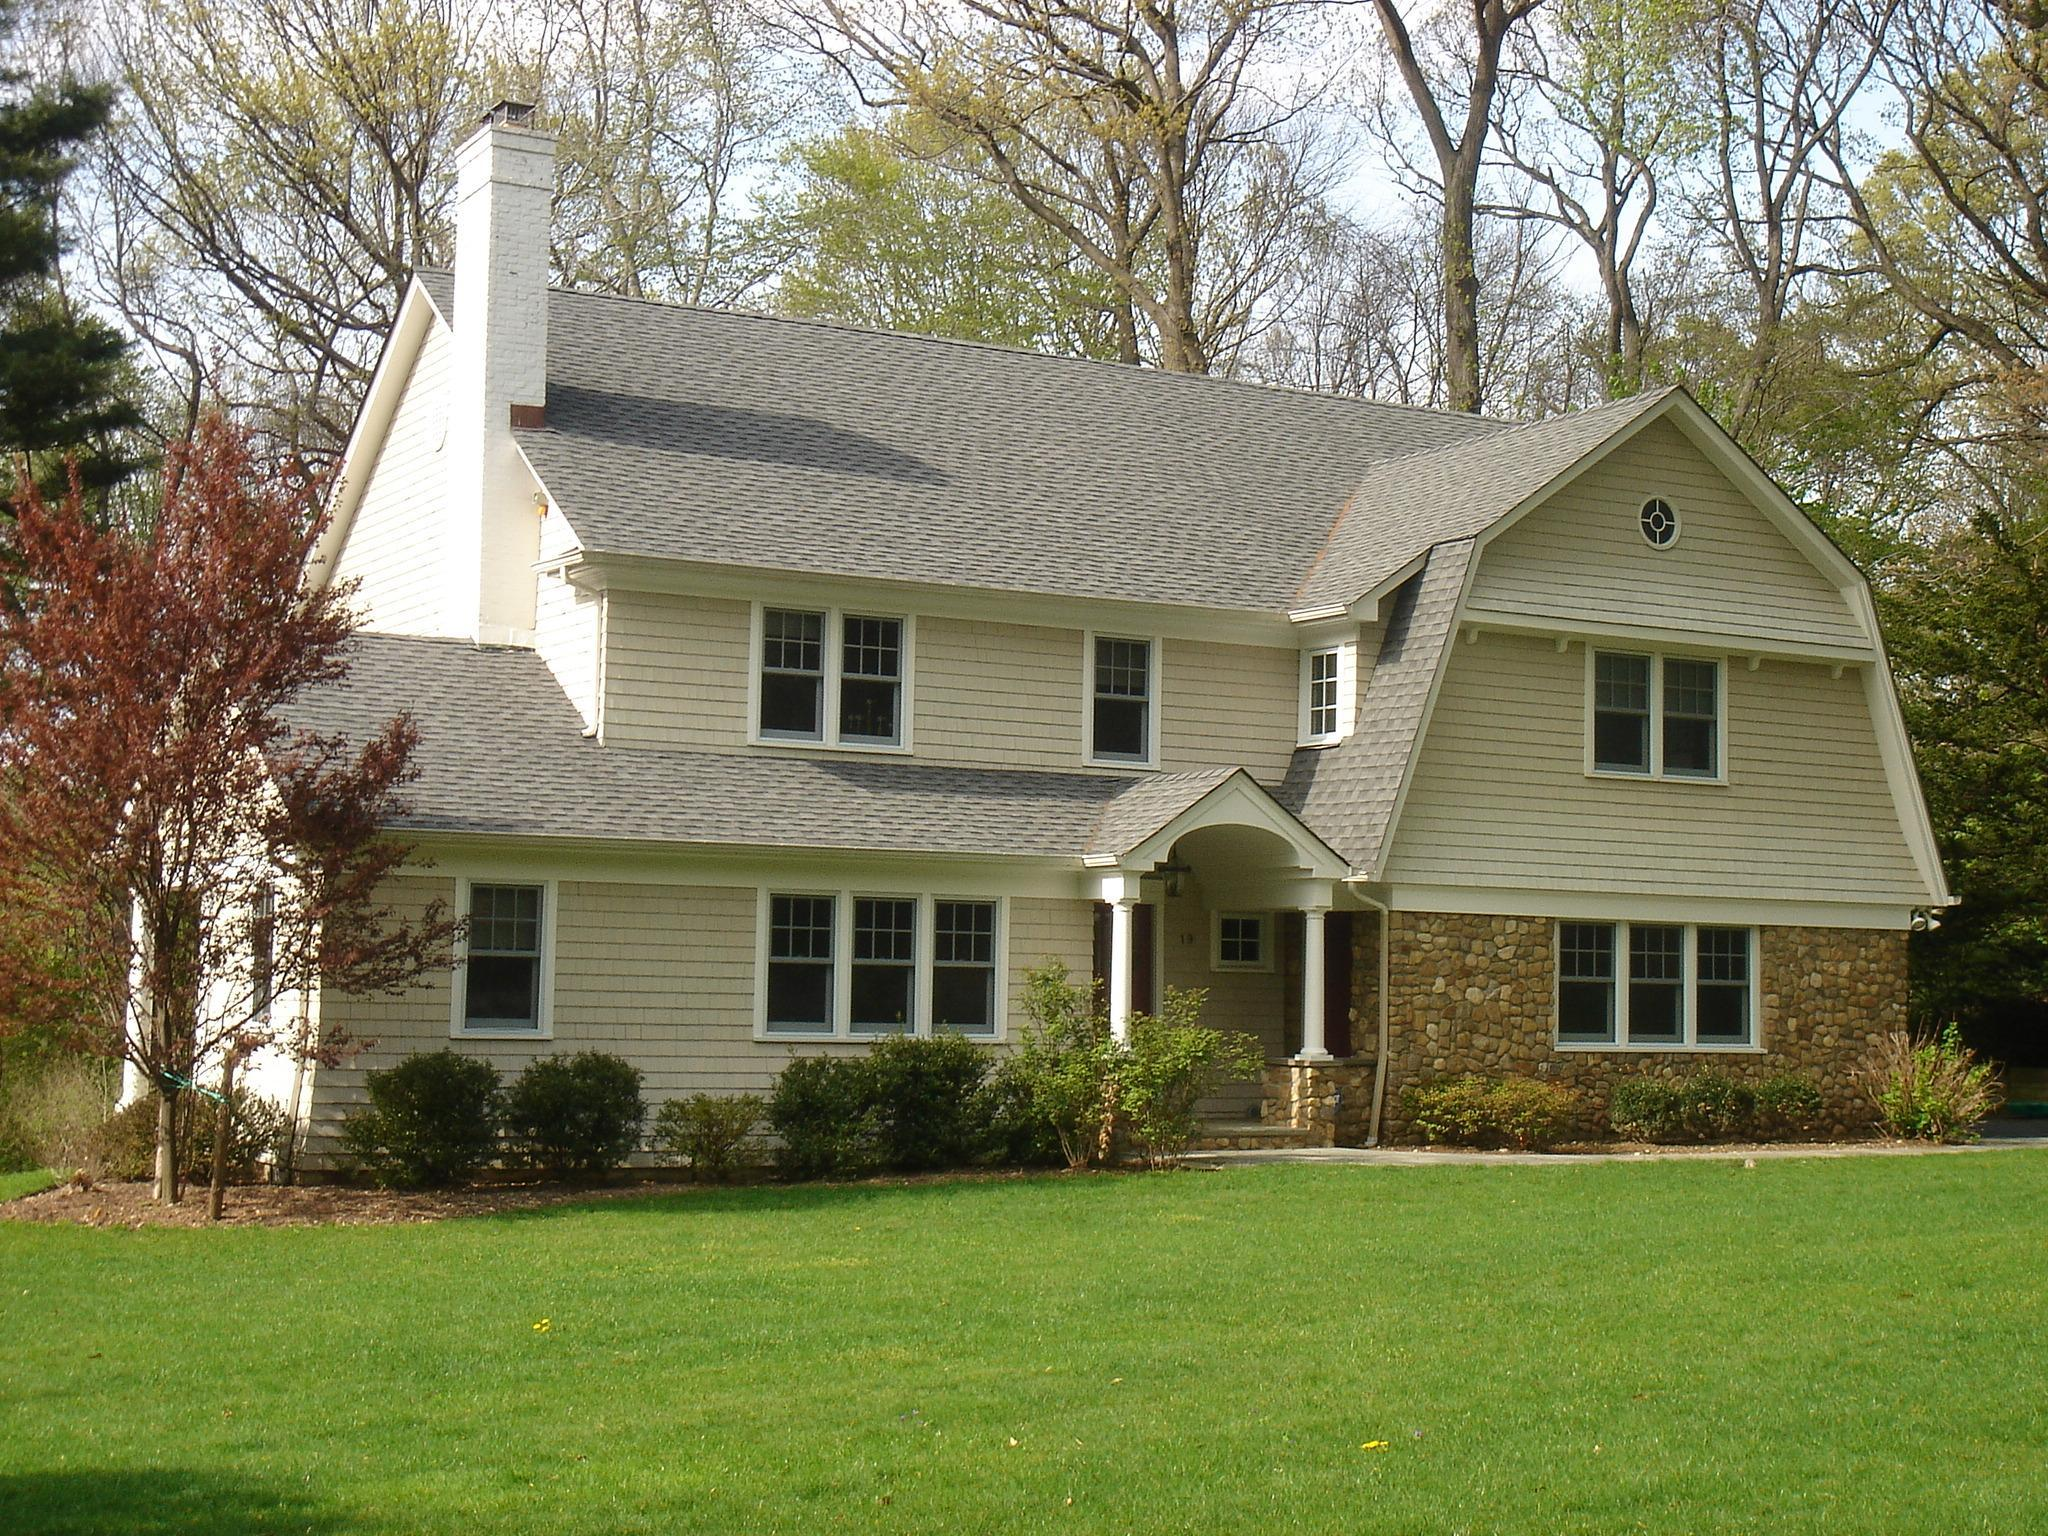 Shingle style appeal. touch of the Hamptons...